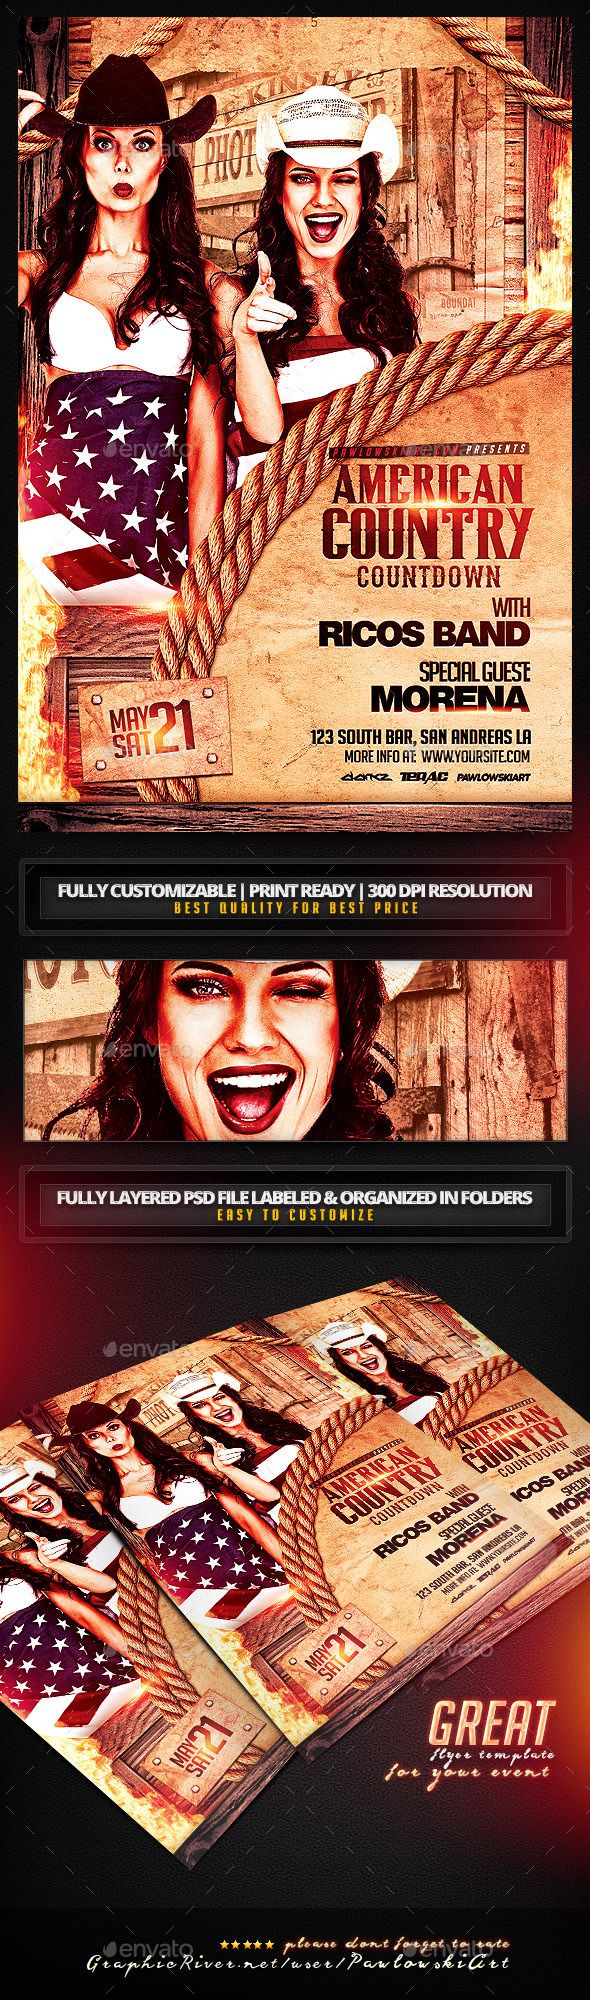 American Country Countdown Event Flyer Template - Miscellaneous Events